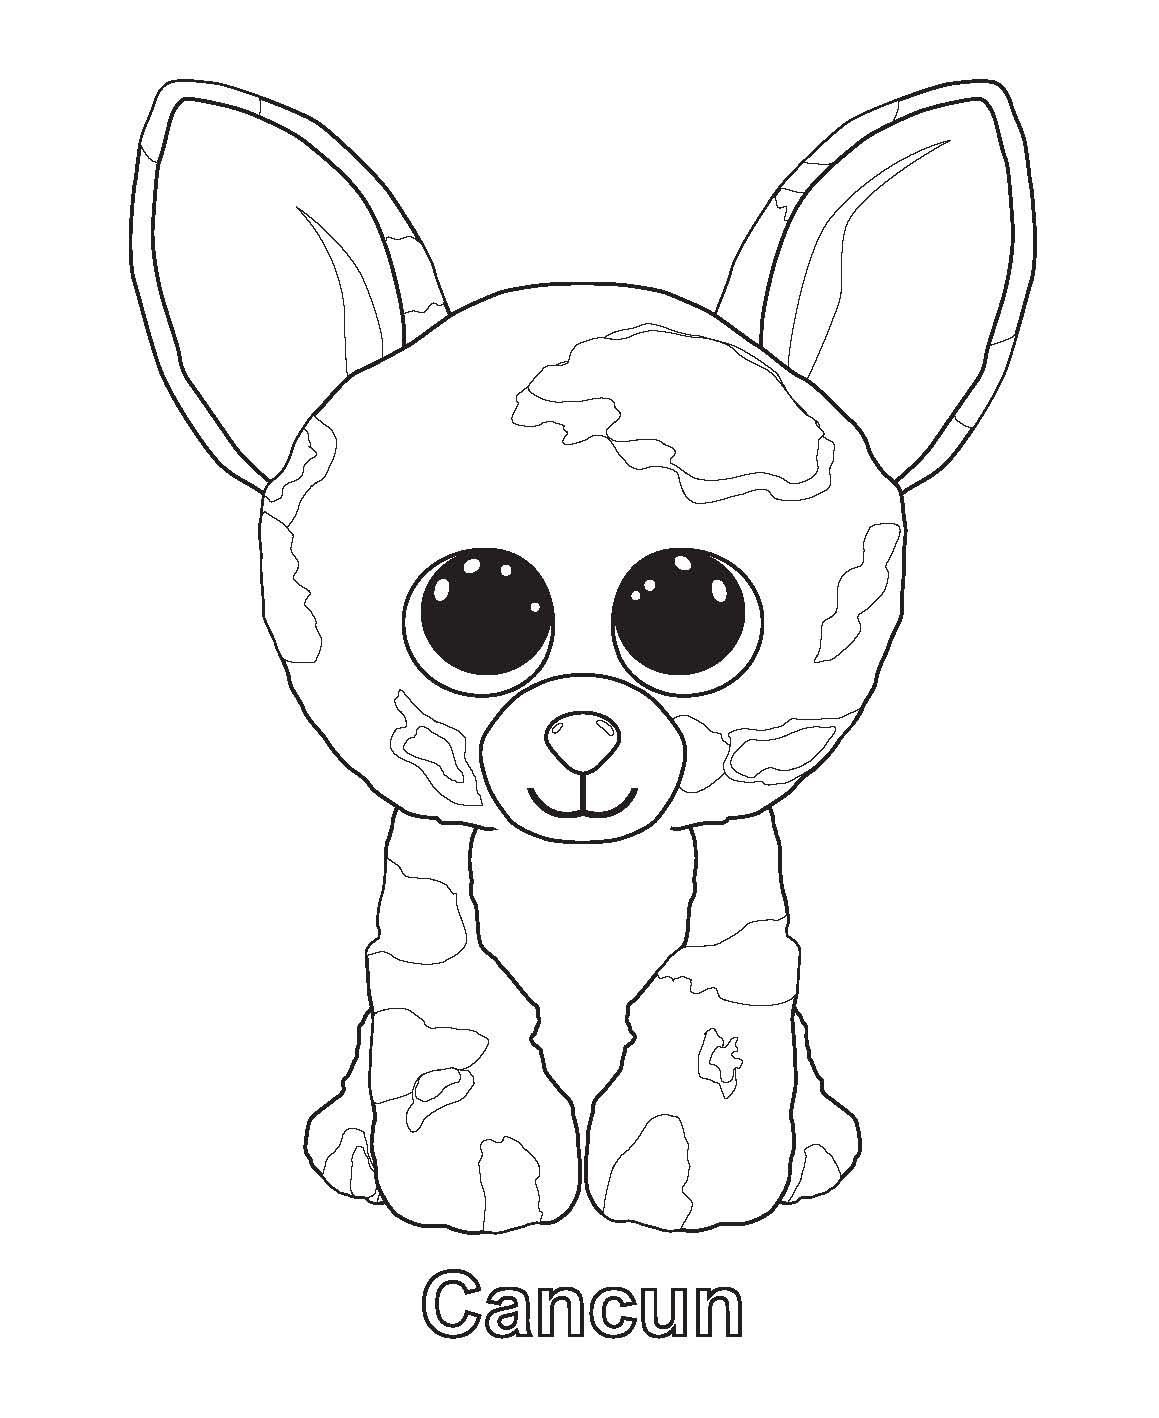 Coloring Ideas : Beanie Boo Coloring Pages Only Staggering Photo - Free Printable Beanie Boo Coloring Pages